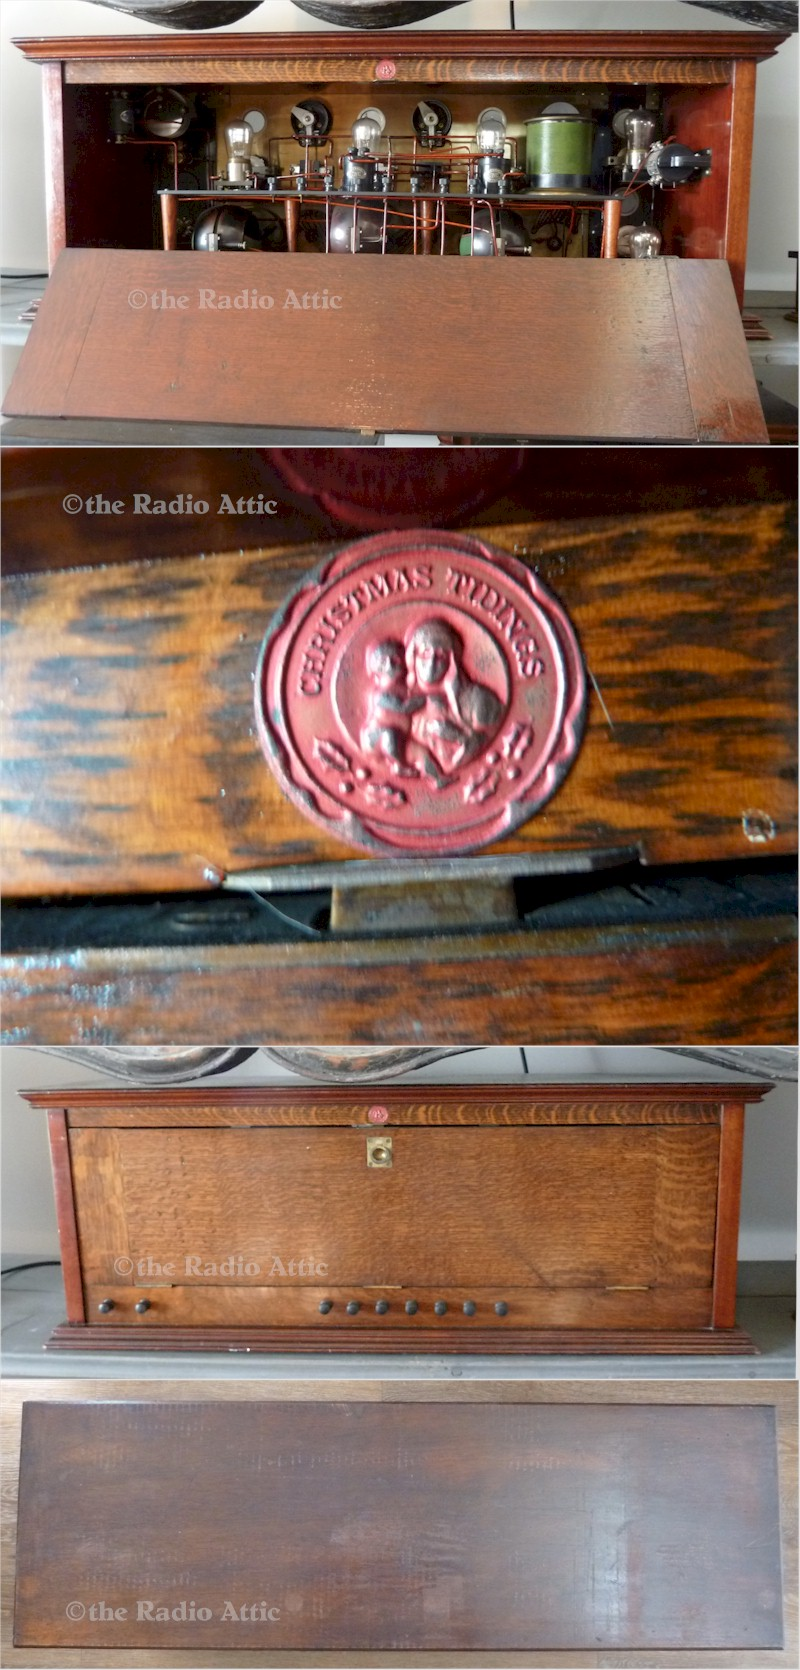 Over the Top One-Off Antique Radio Receiver